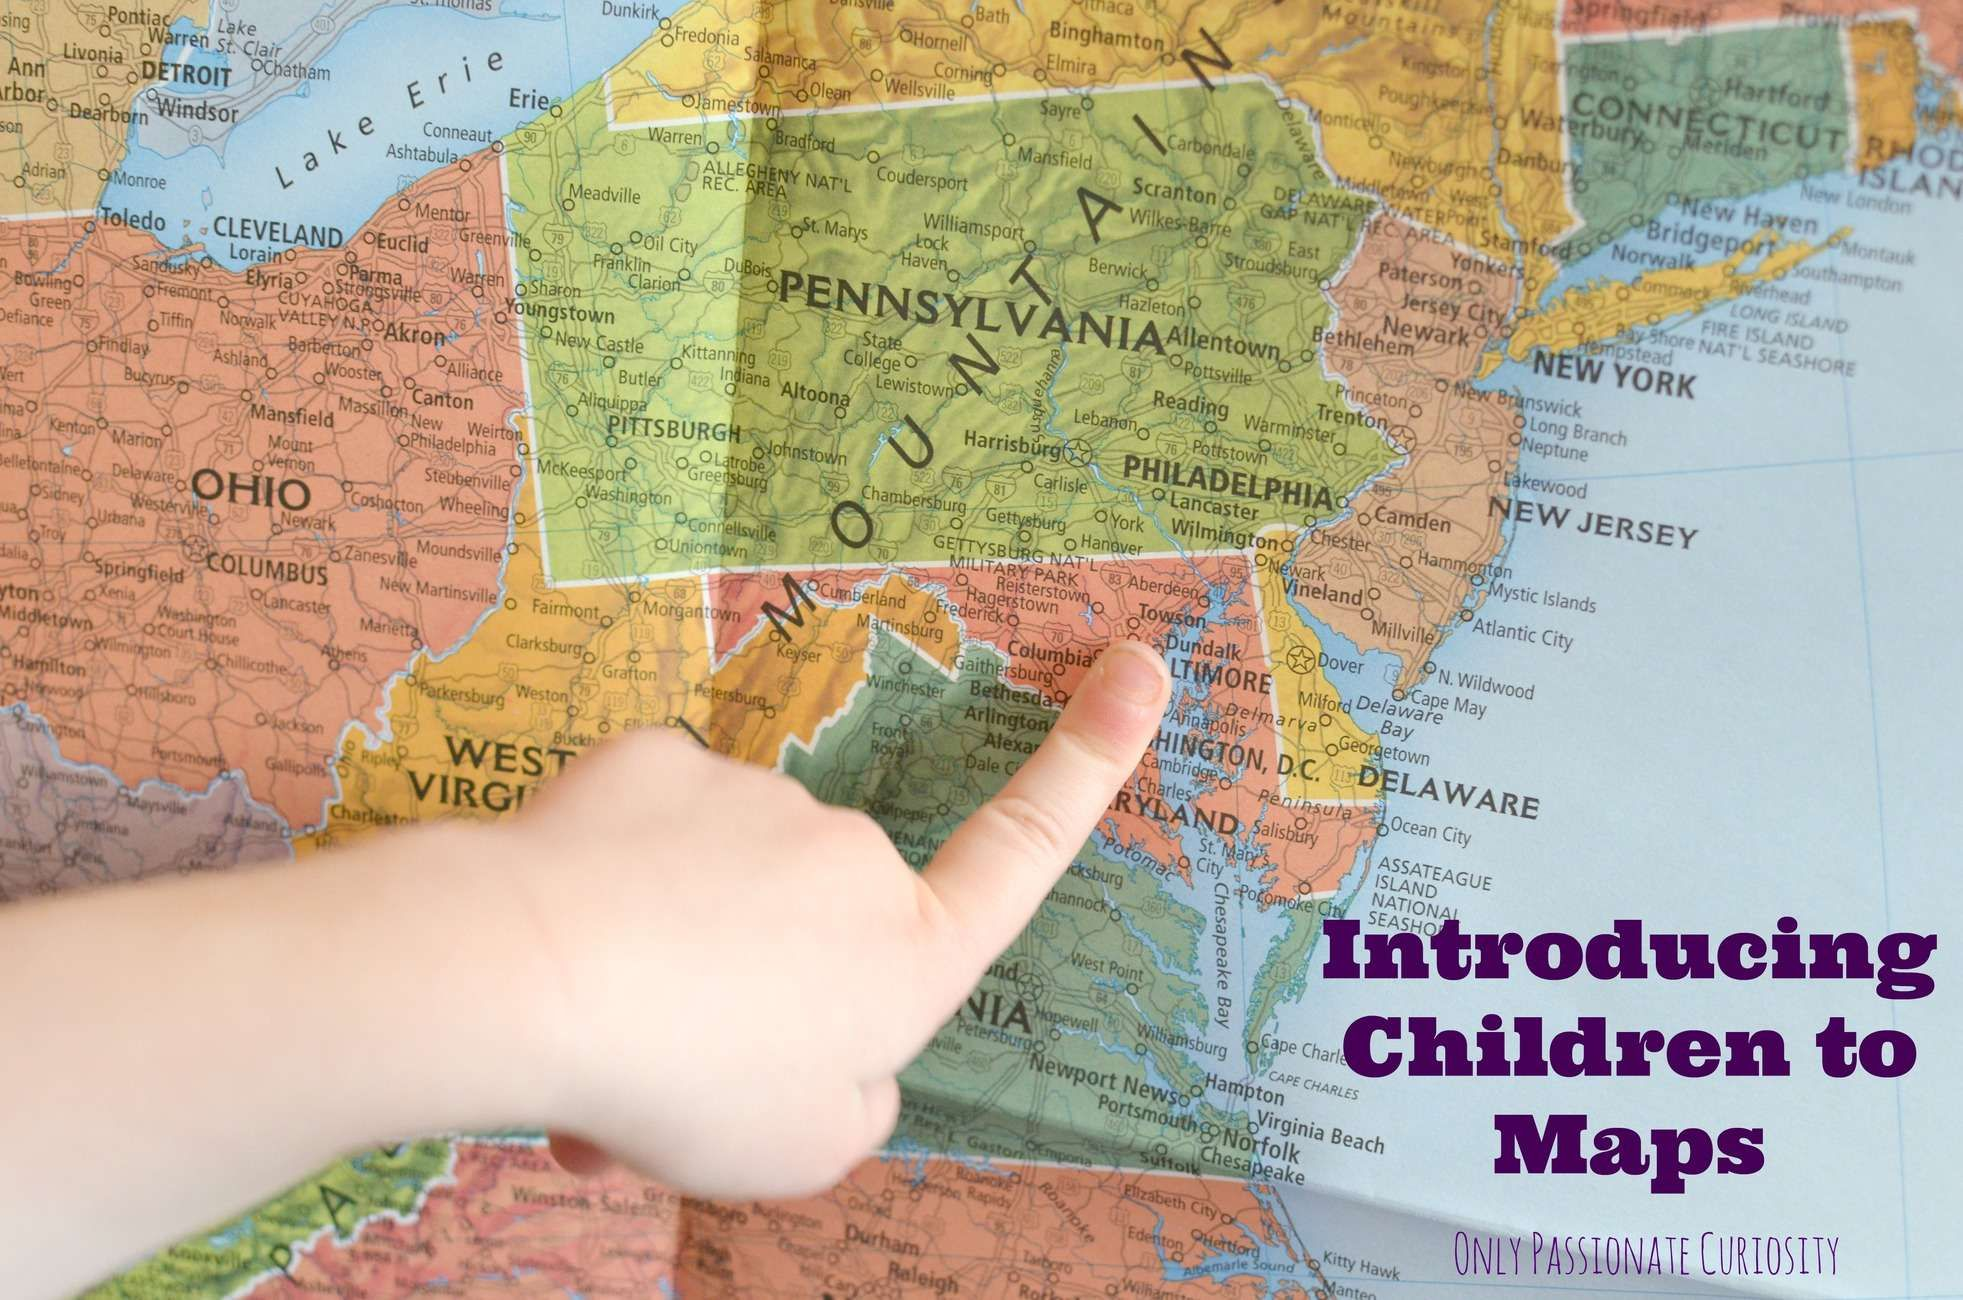 Introducing Children To Maps And Globes